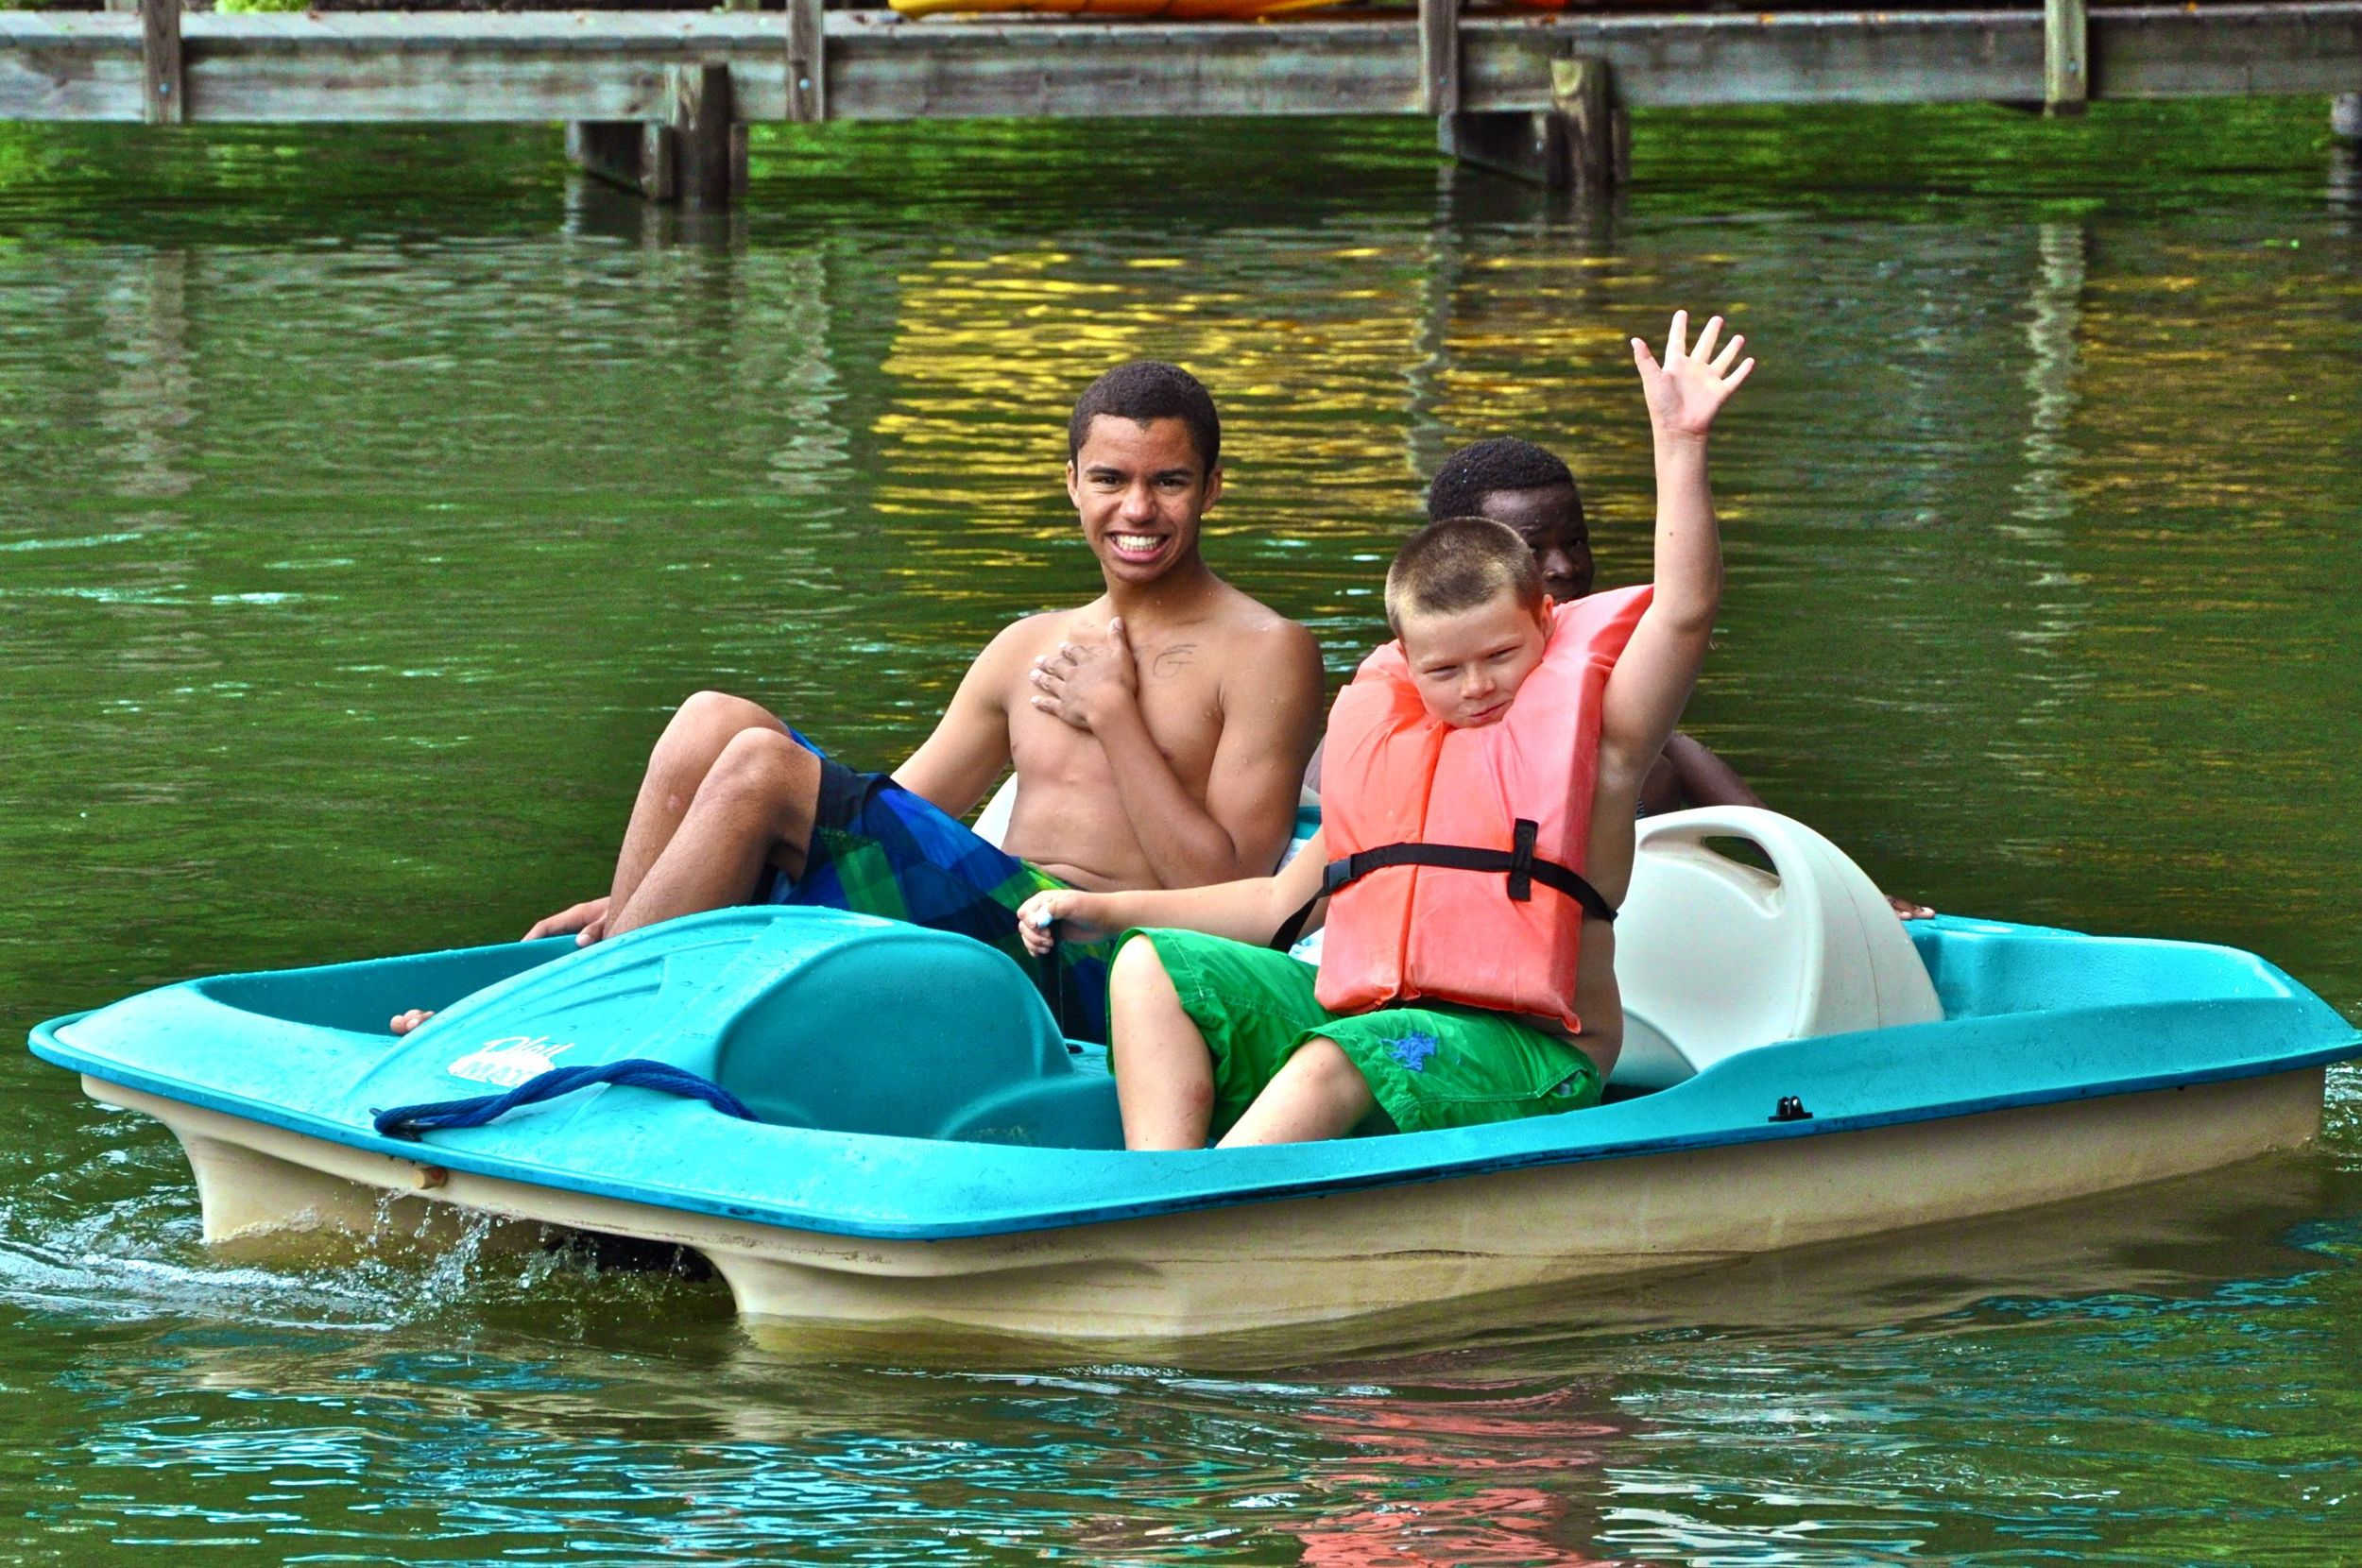 greg-tommy-and-jazel-enjoy-a-nice-boat-ride-on-lake-james.jpg